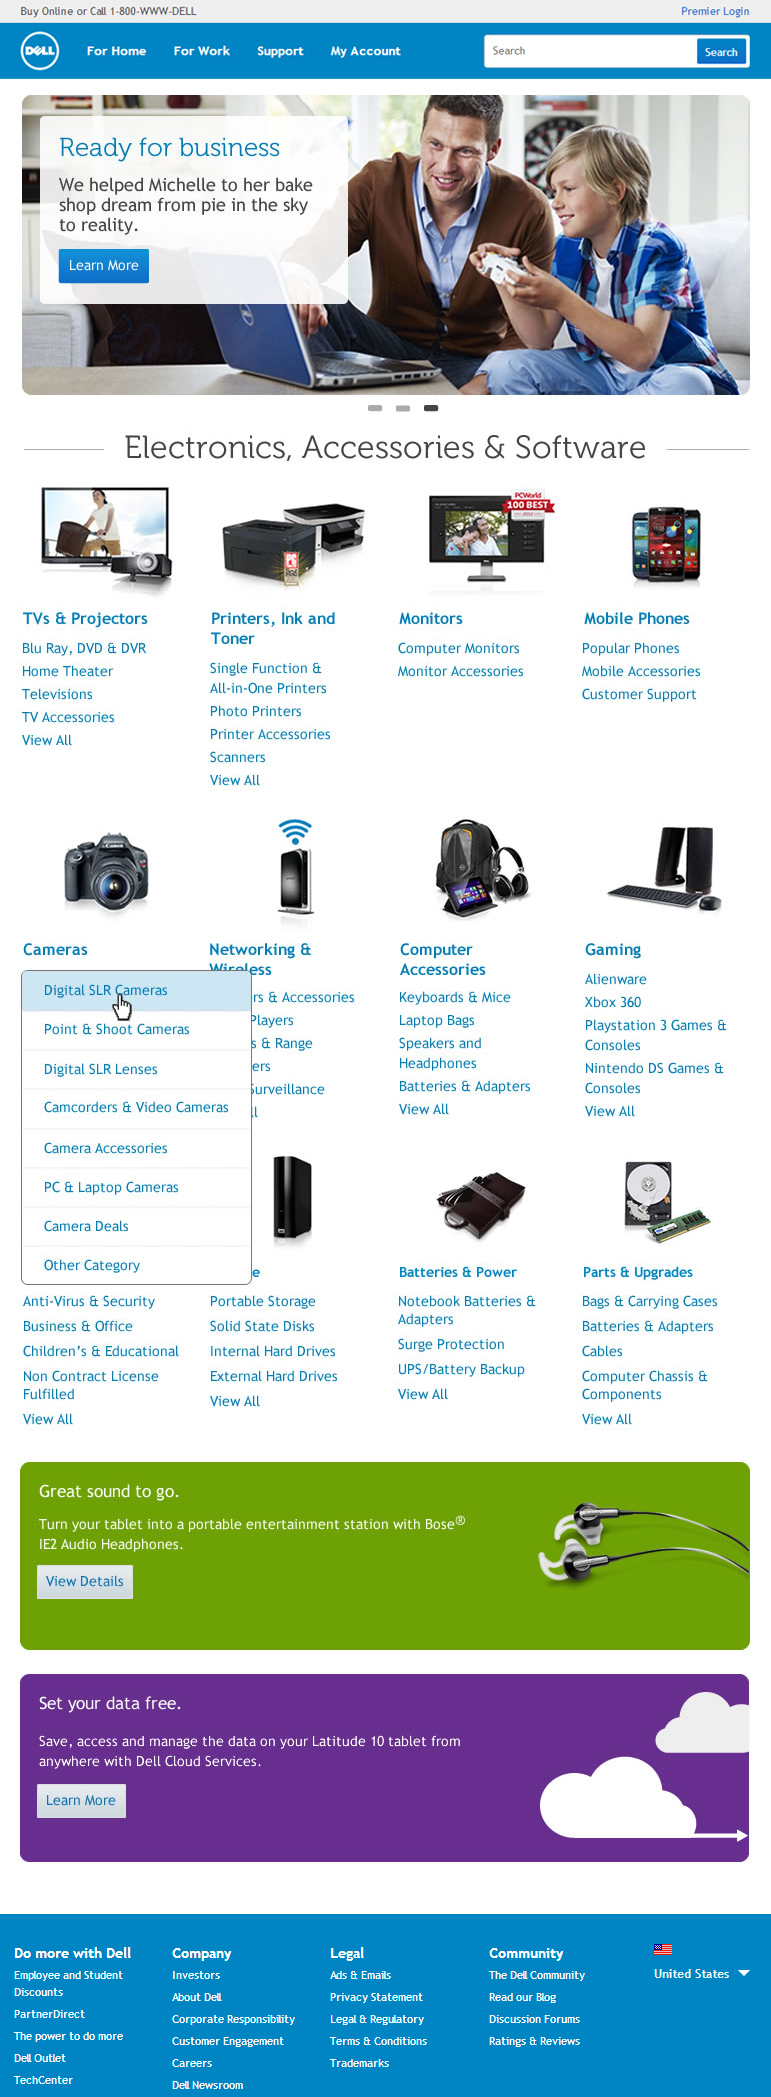 Accessories home page